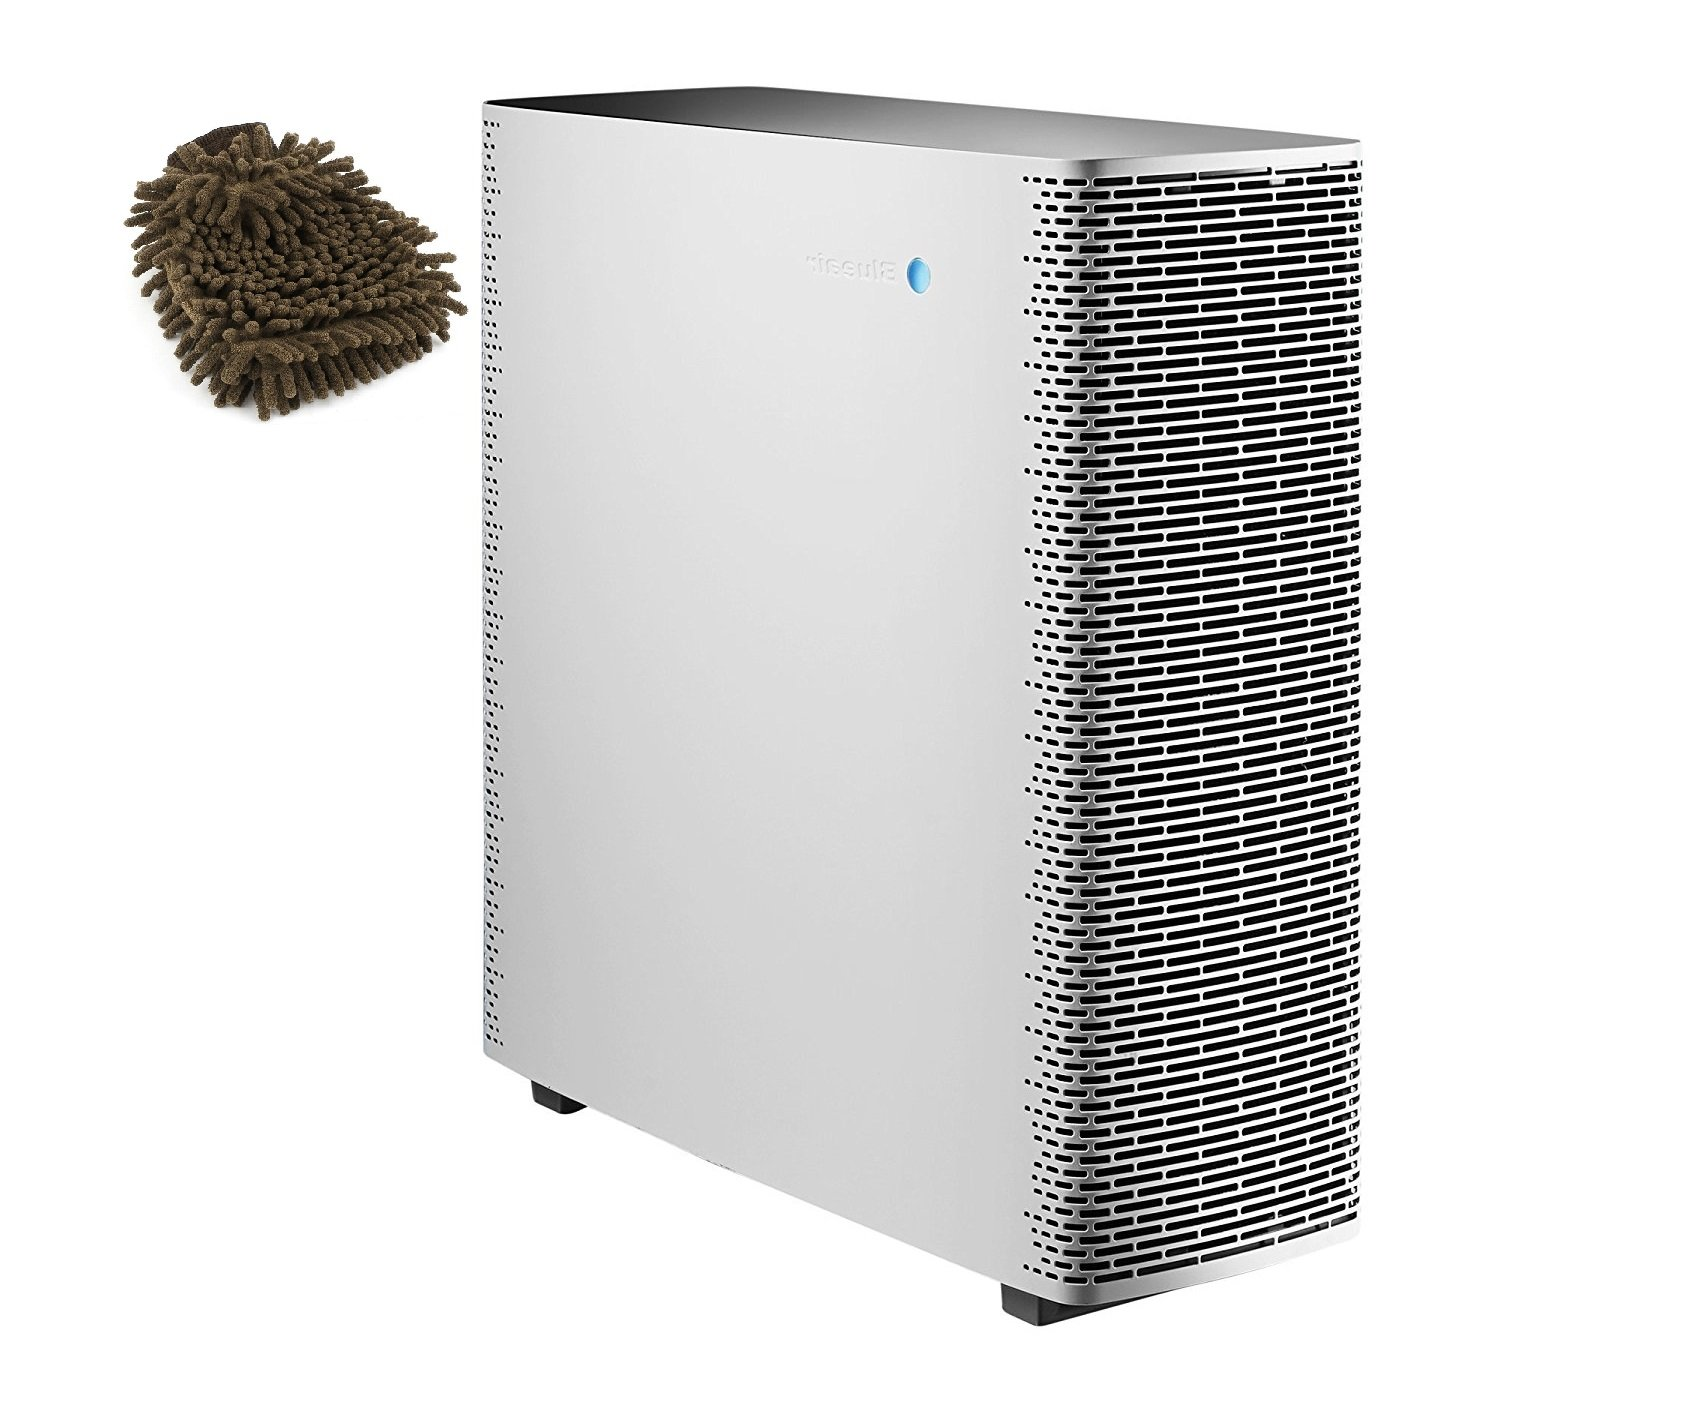 Sense+PW Blueair Air Purifier, Polar White (Complete Set) w/ Bonus: Premium Microfiber Cleaner Bundle by Blueair